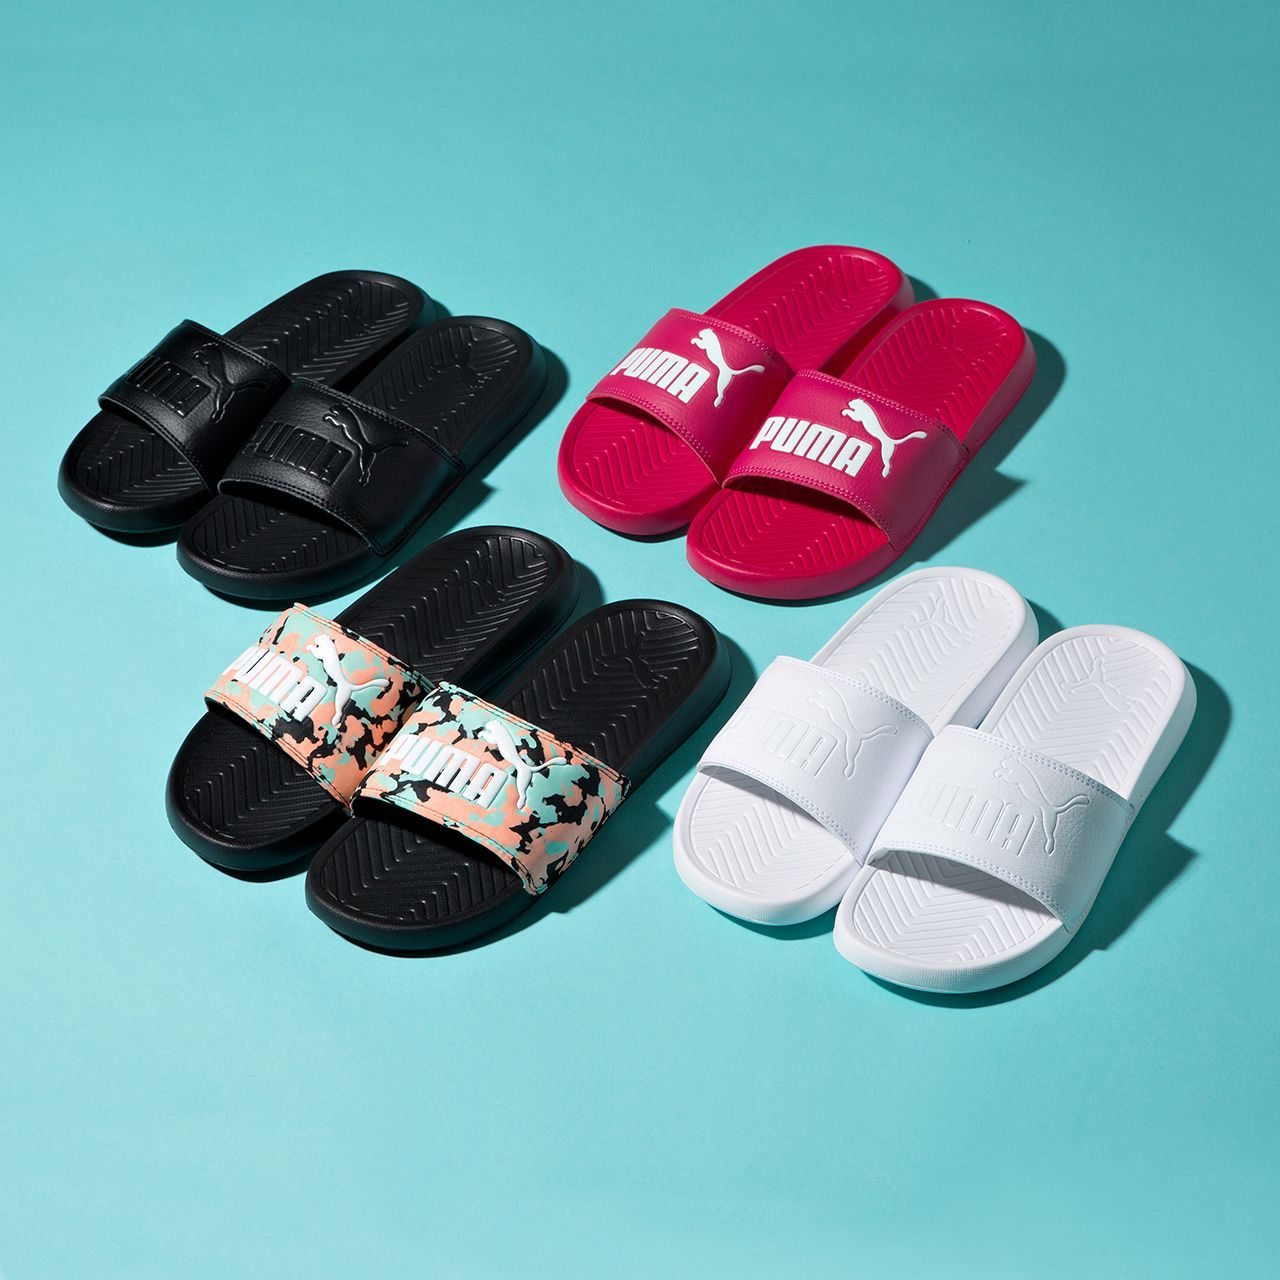 7d978ee0e354 Prepare for the holiday season with the Puma Womens Popcat Slide Sandal.